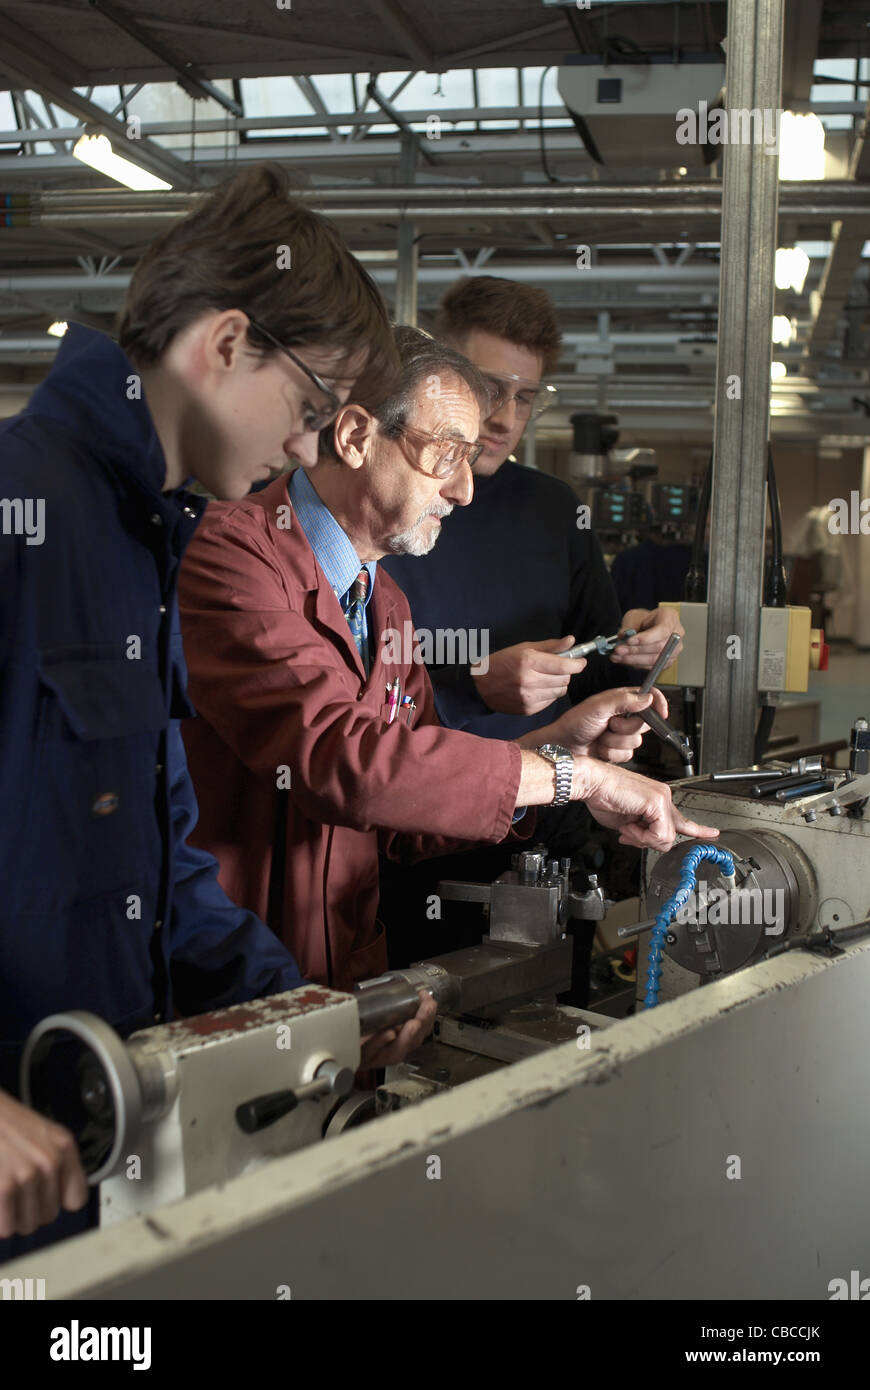 Teacher helping students in shop class Stock Photo